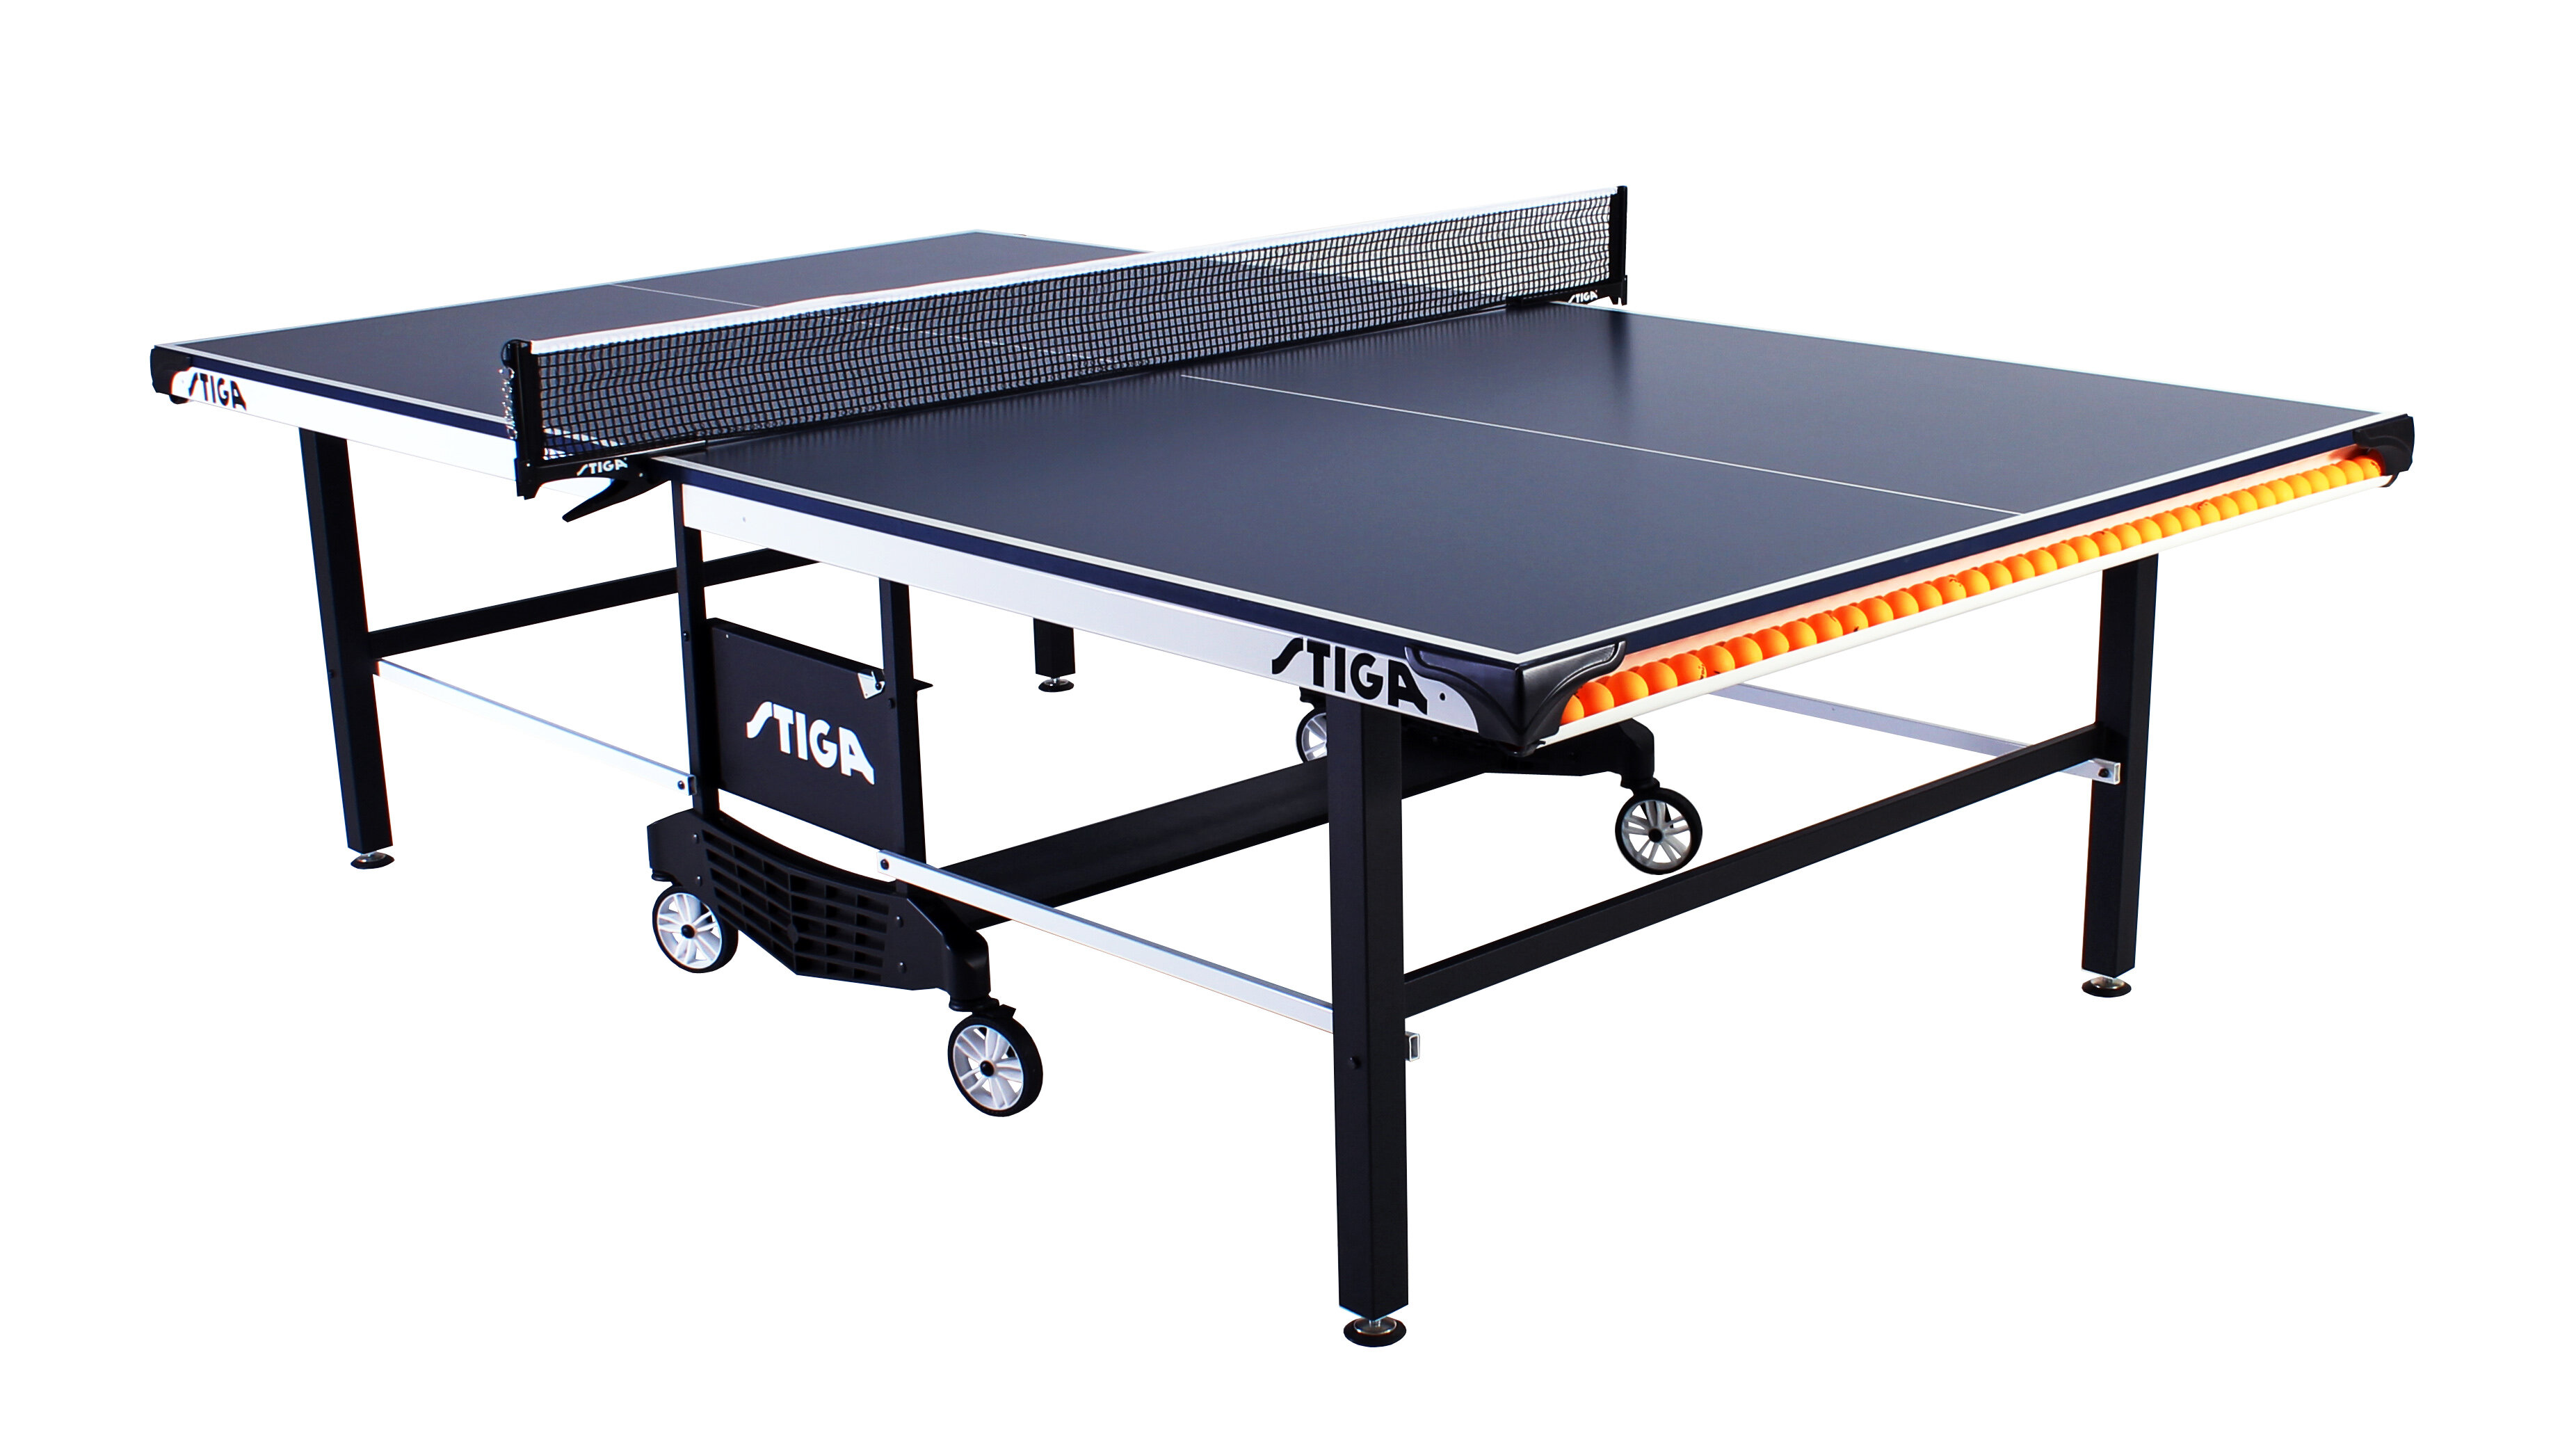 Stiga Sts 385 Regulation Size Foldable Indoor Table Tennis Table 19mm Thick Reviews Wayfair